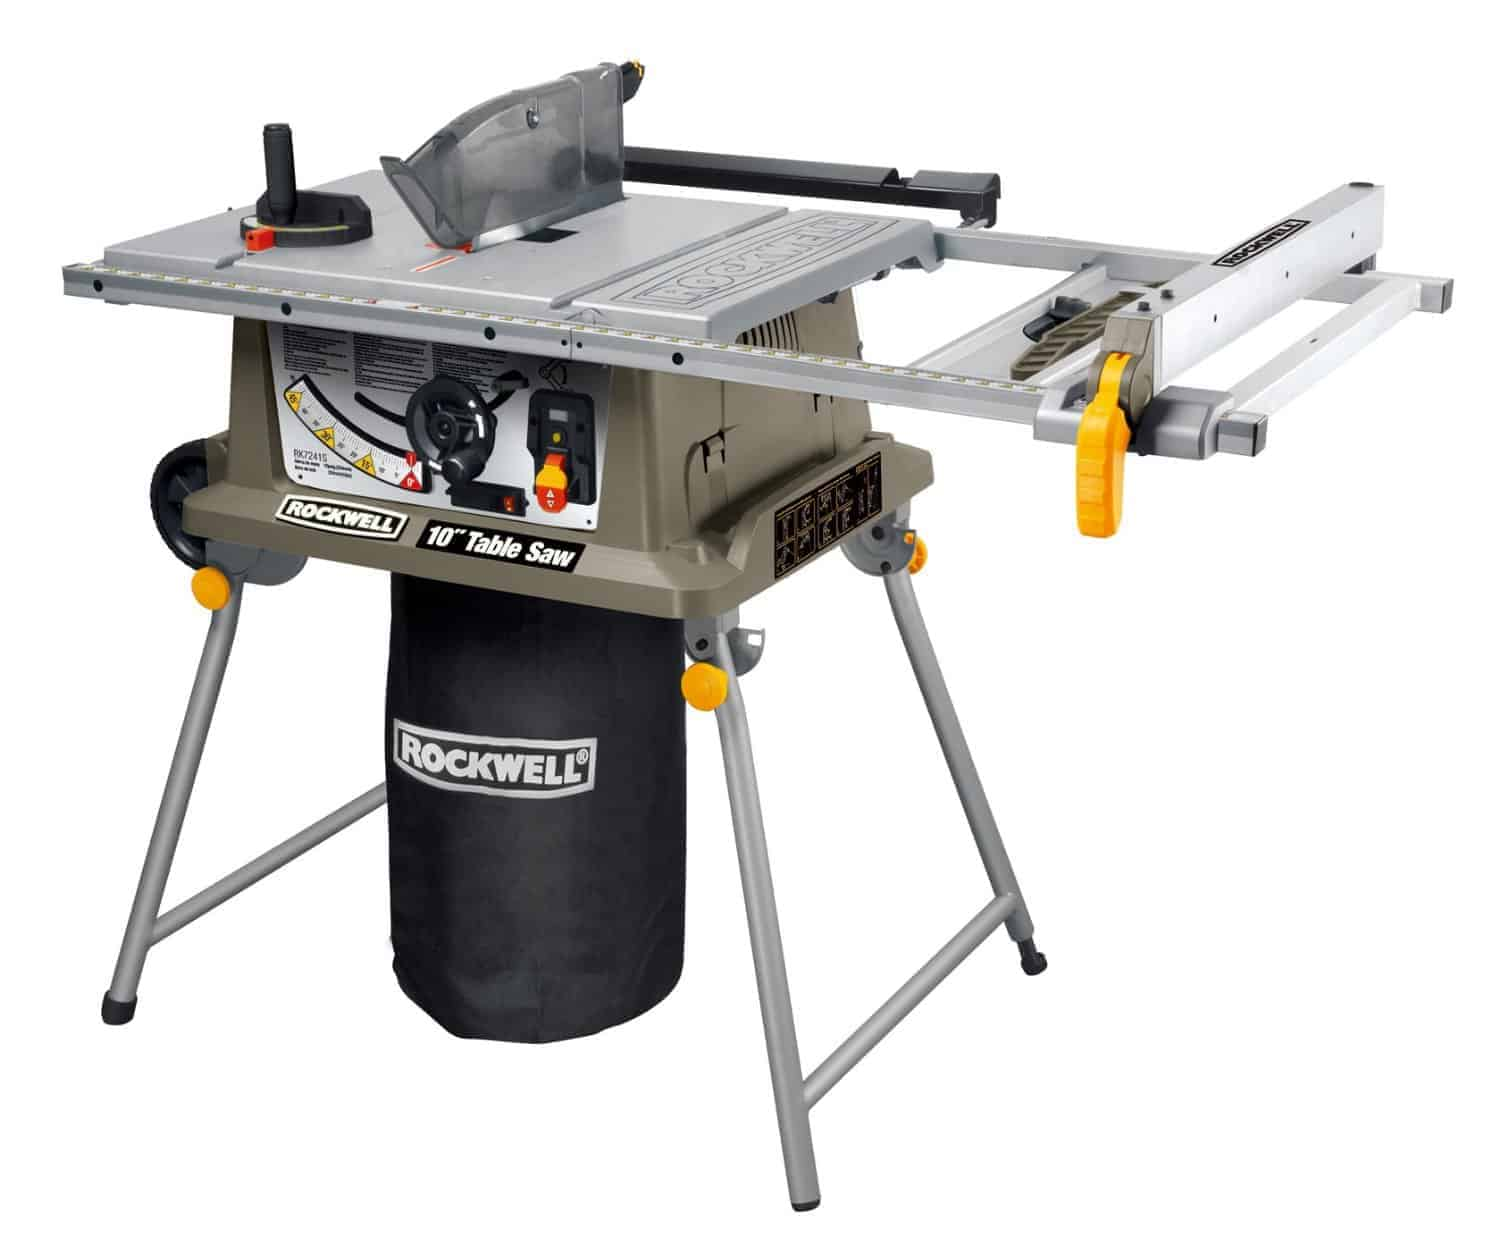 Rockwell rk7241s 10 inch portable table saw review Portable table saw reviews